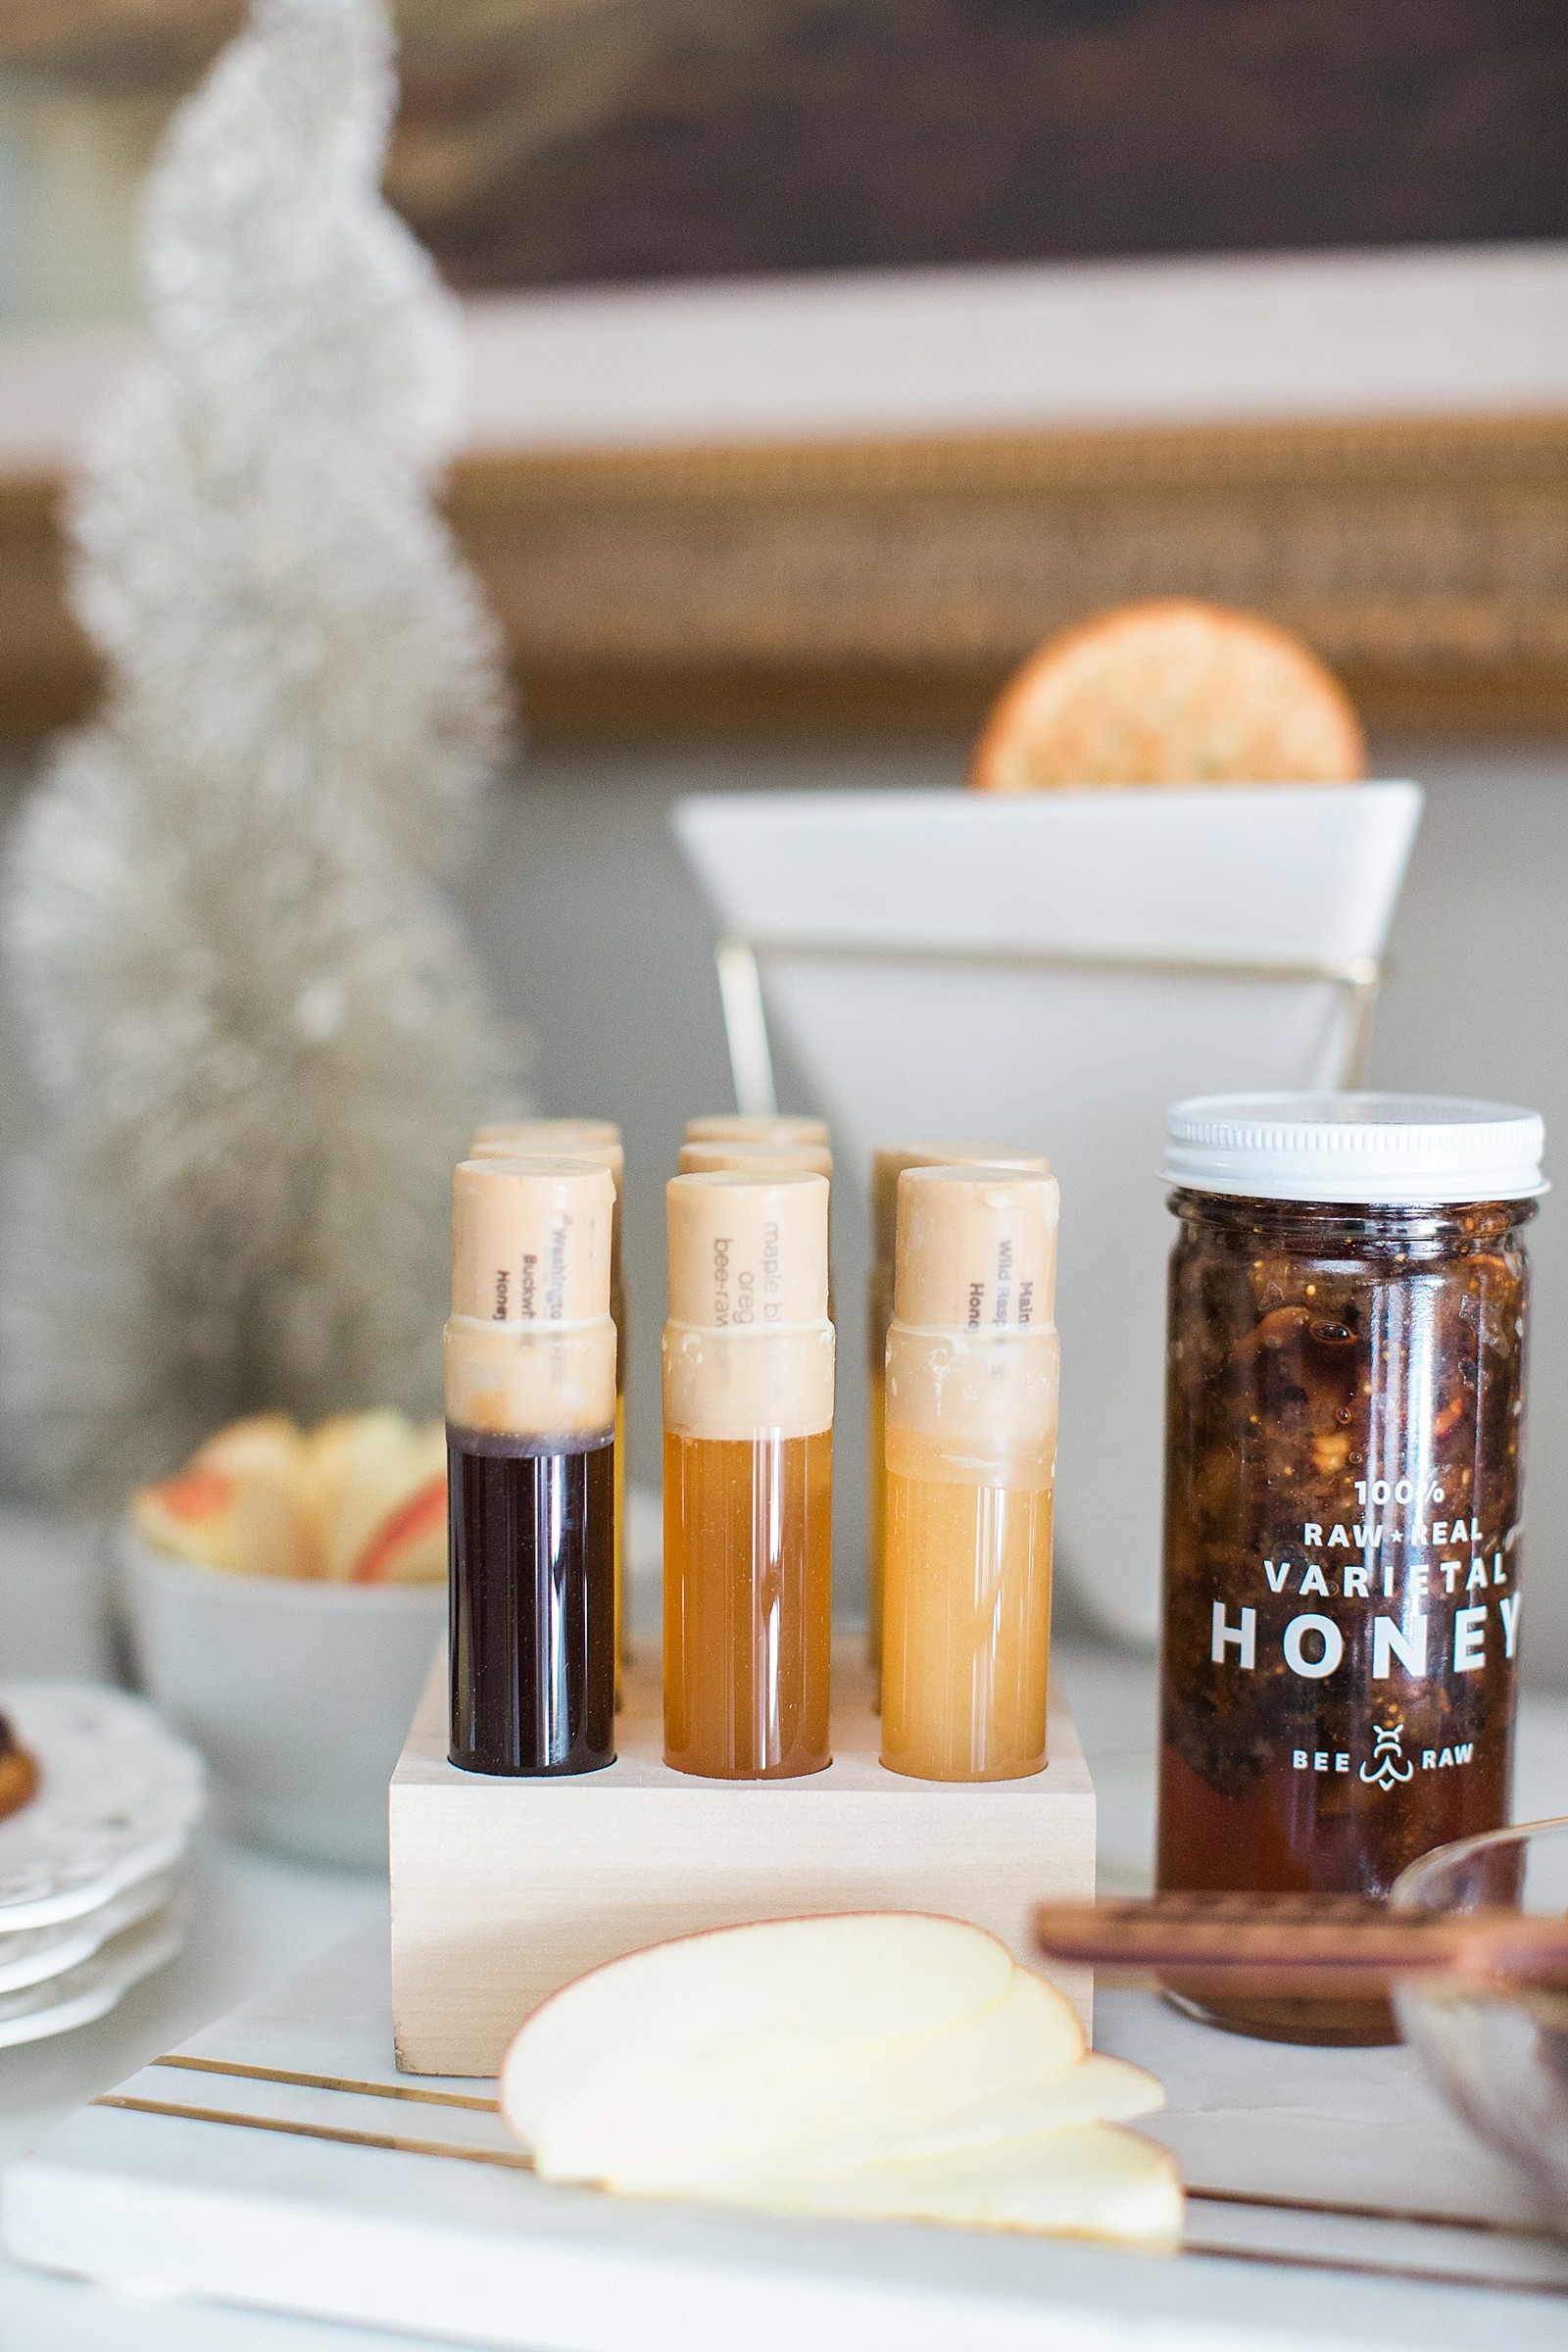 honey-beeraw-bee-raw-paypal-online-shopping-gift-ideas-small-business_0052